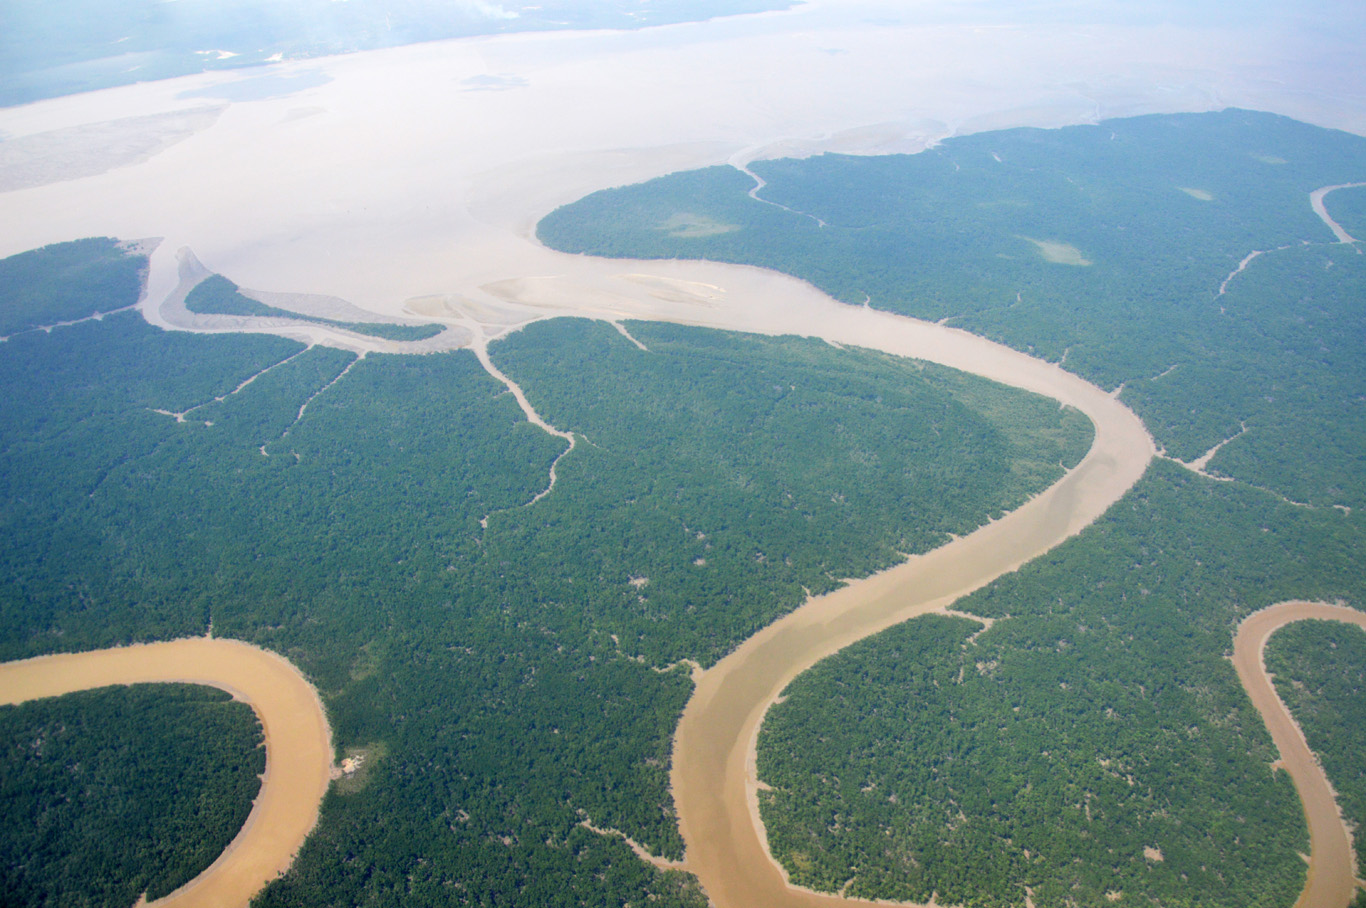 Aerial View of the rainforest